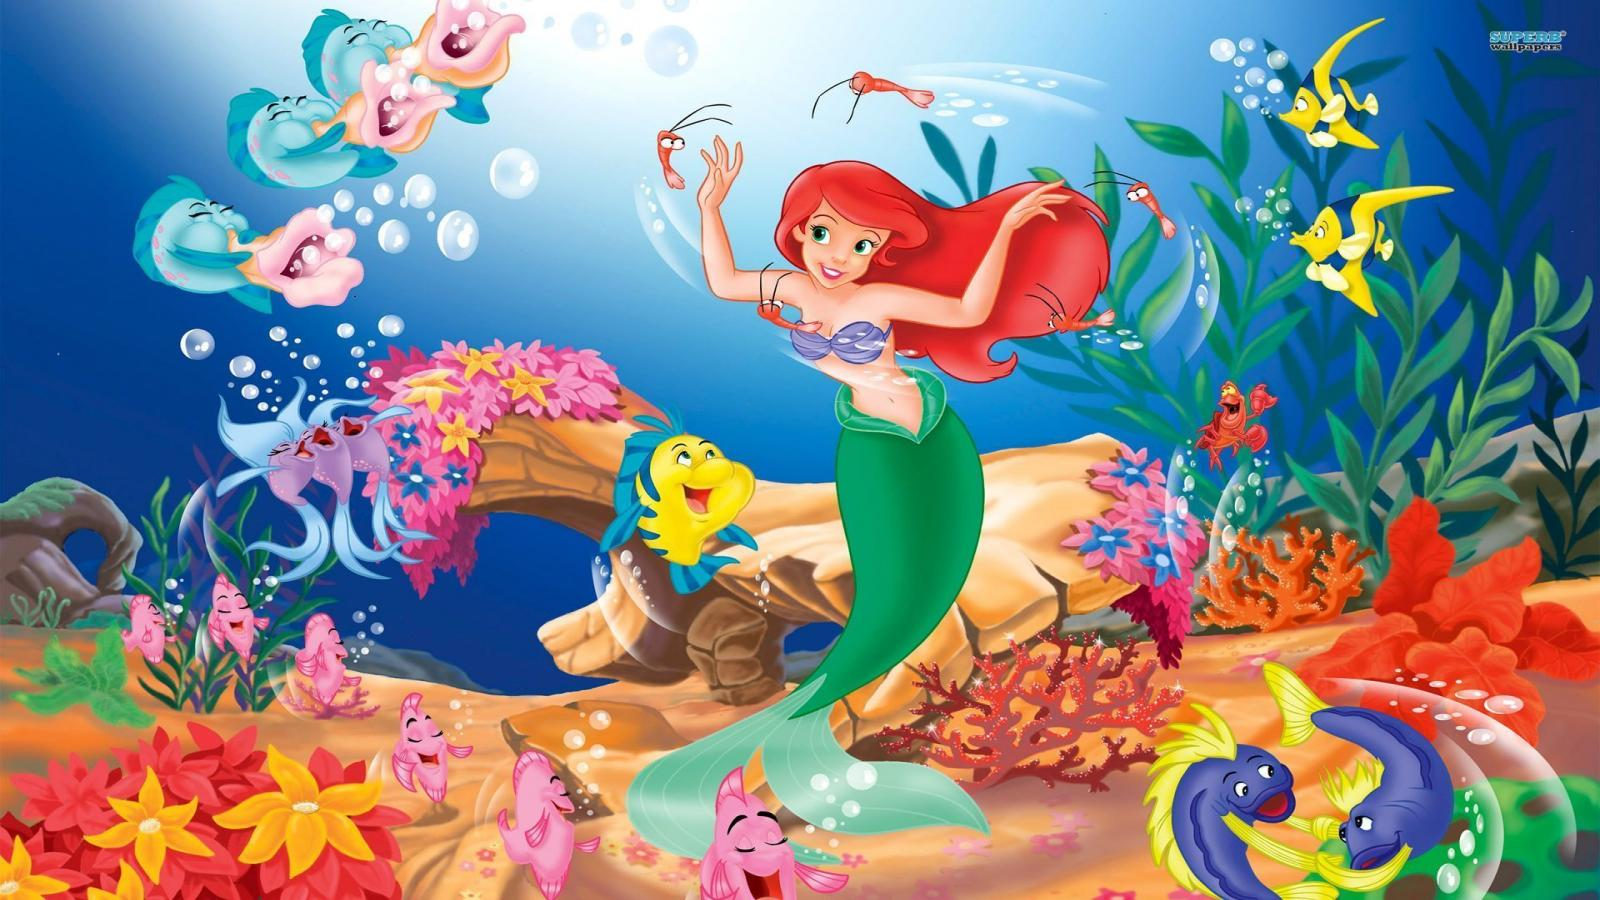 Under the sea (from The Little Mermaid)